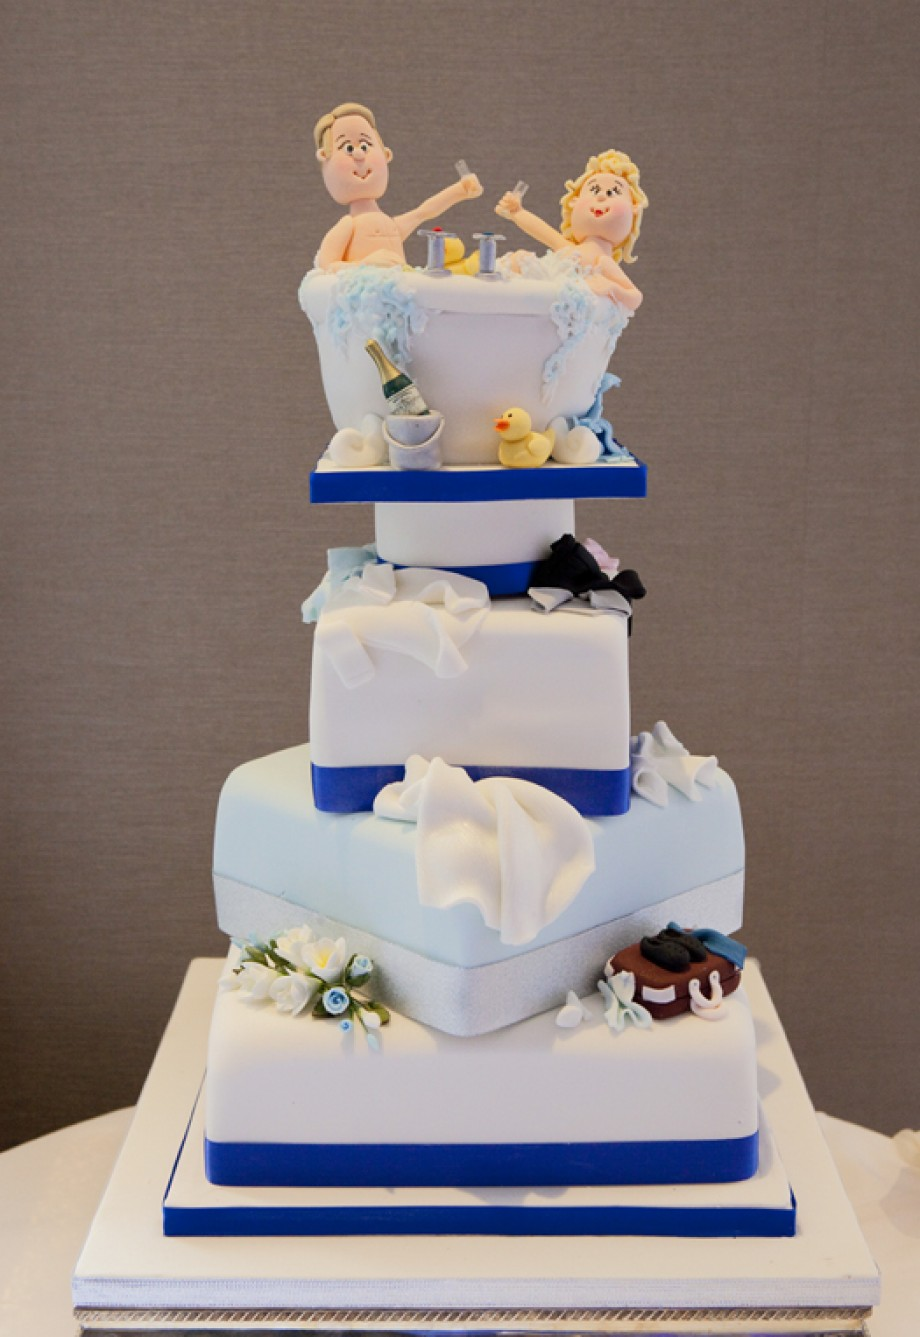 Amazing wedding cakes pictures wallpaper pictures for Amazing wedding cake decoration game